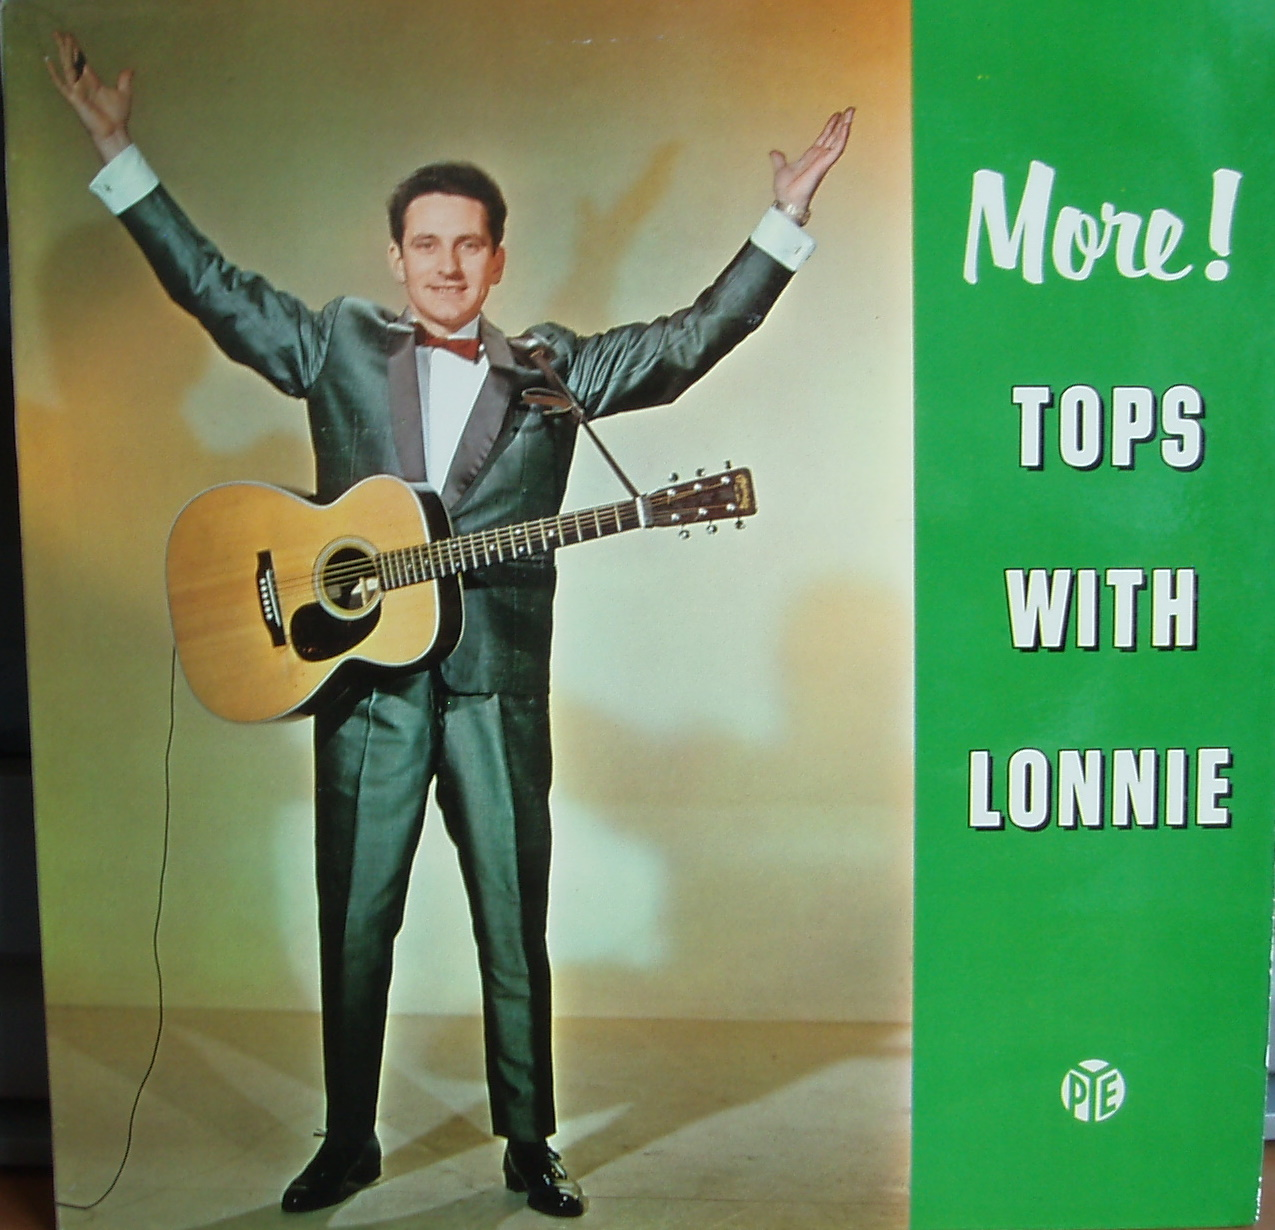 More Tops With Lonnie